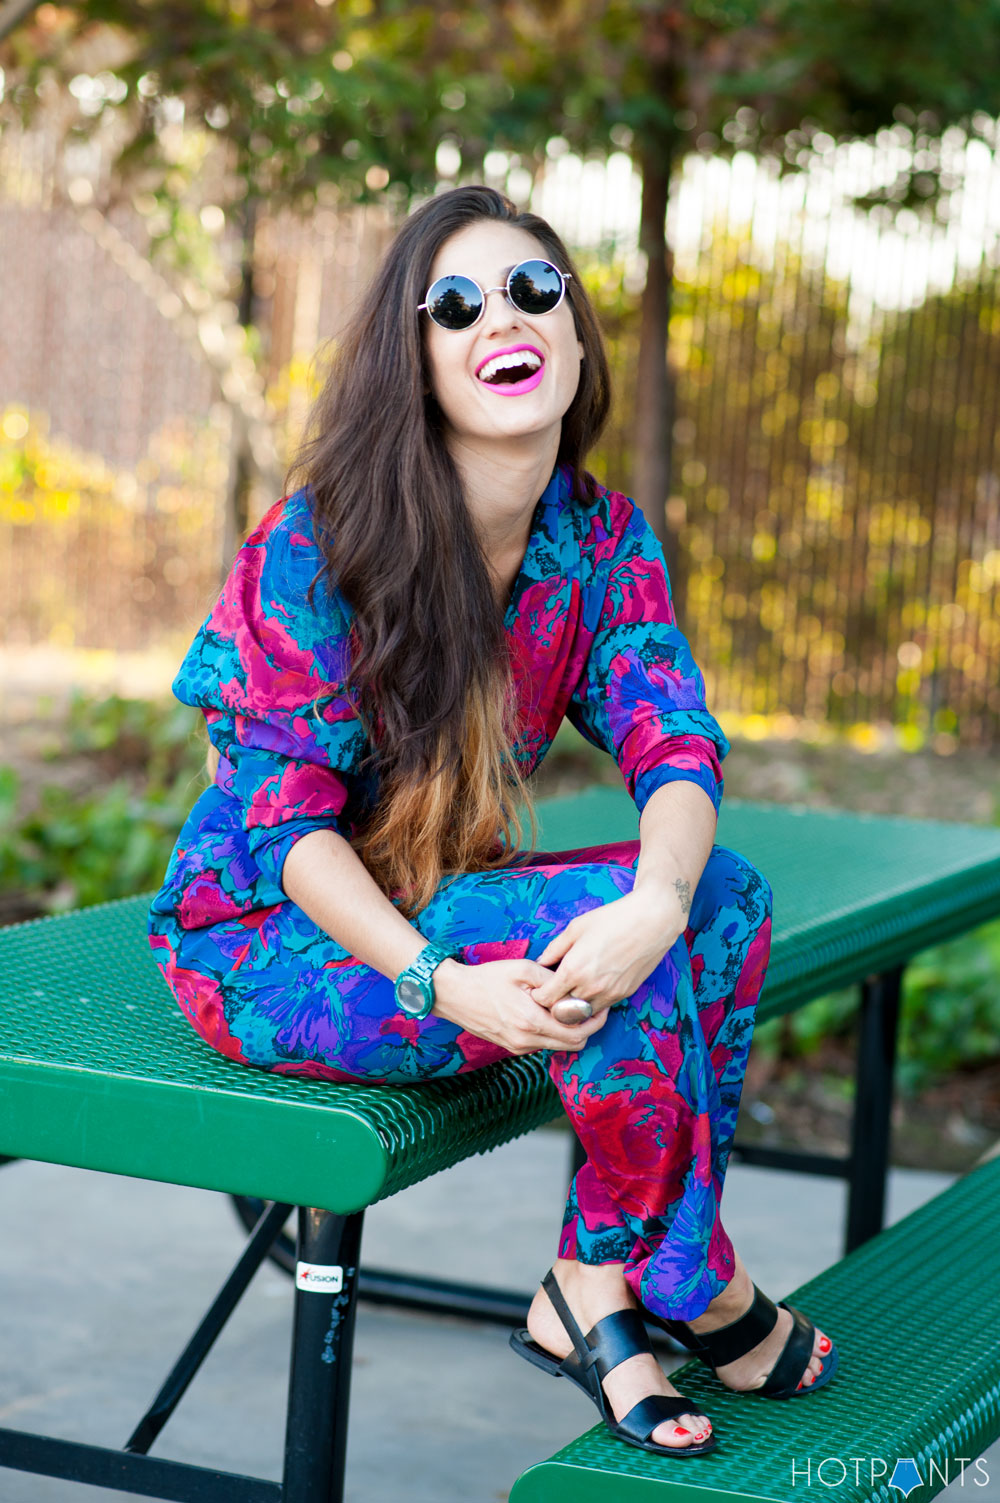 Do The Hotpants Dana Suchow California Girl Pool Pink Lipstick Floral Jumpsuit 8